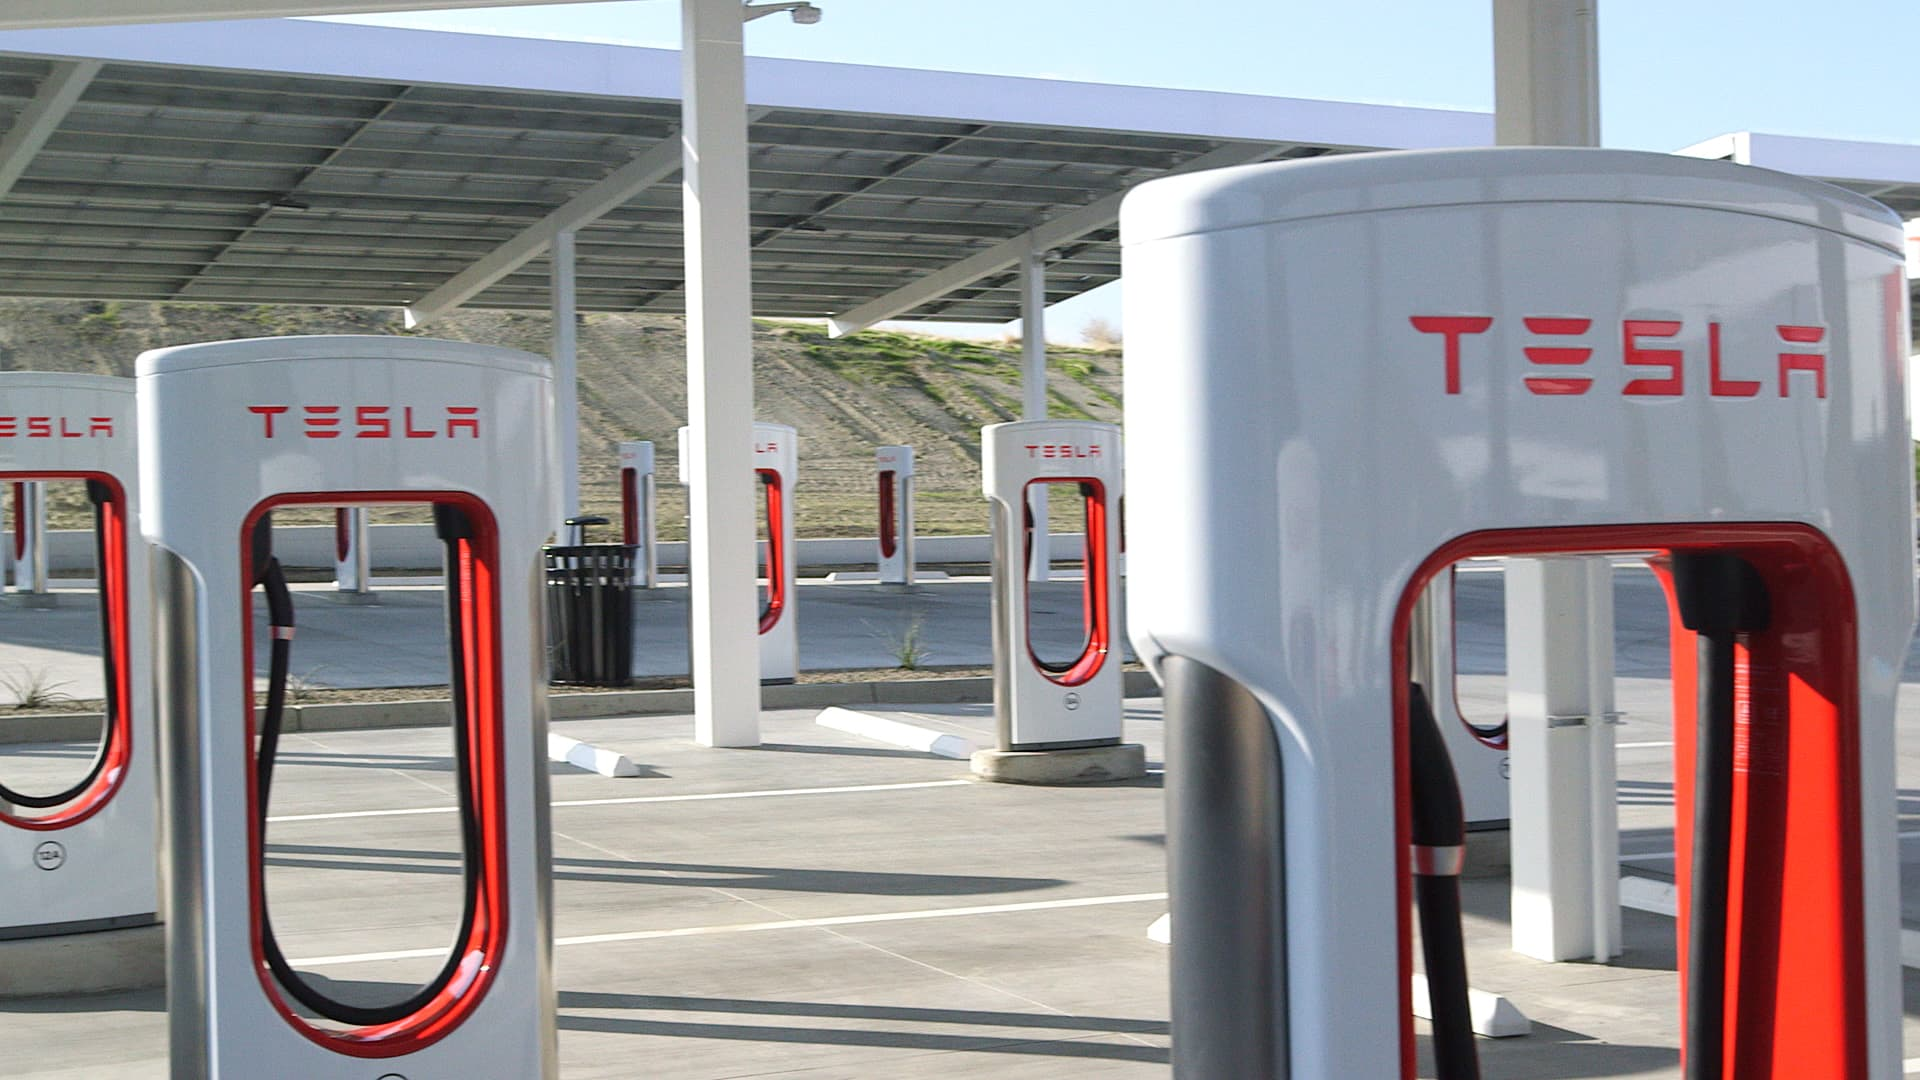 Elon Musk says Tesla will open Superchargers to other cars in 2021